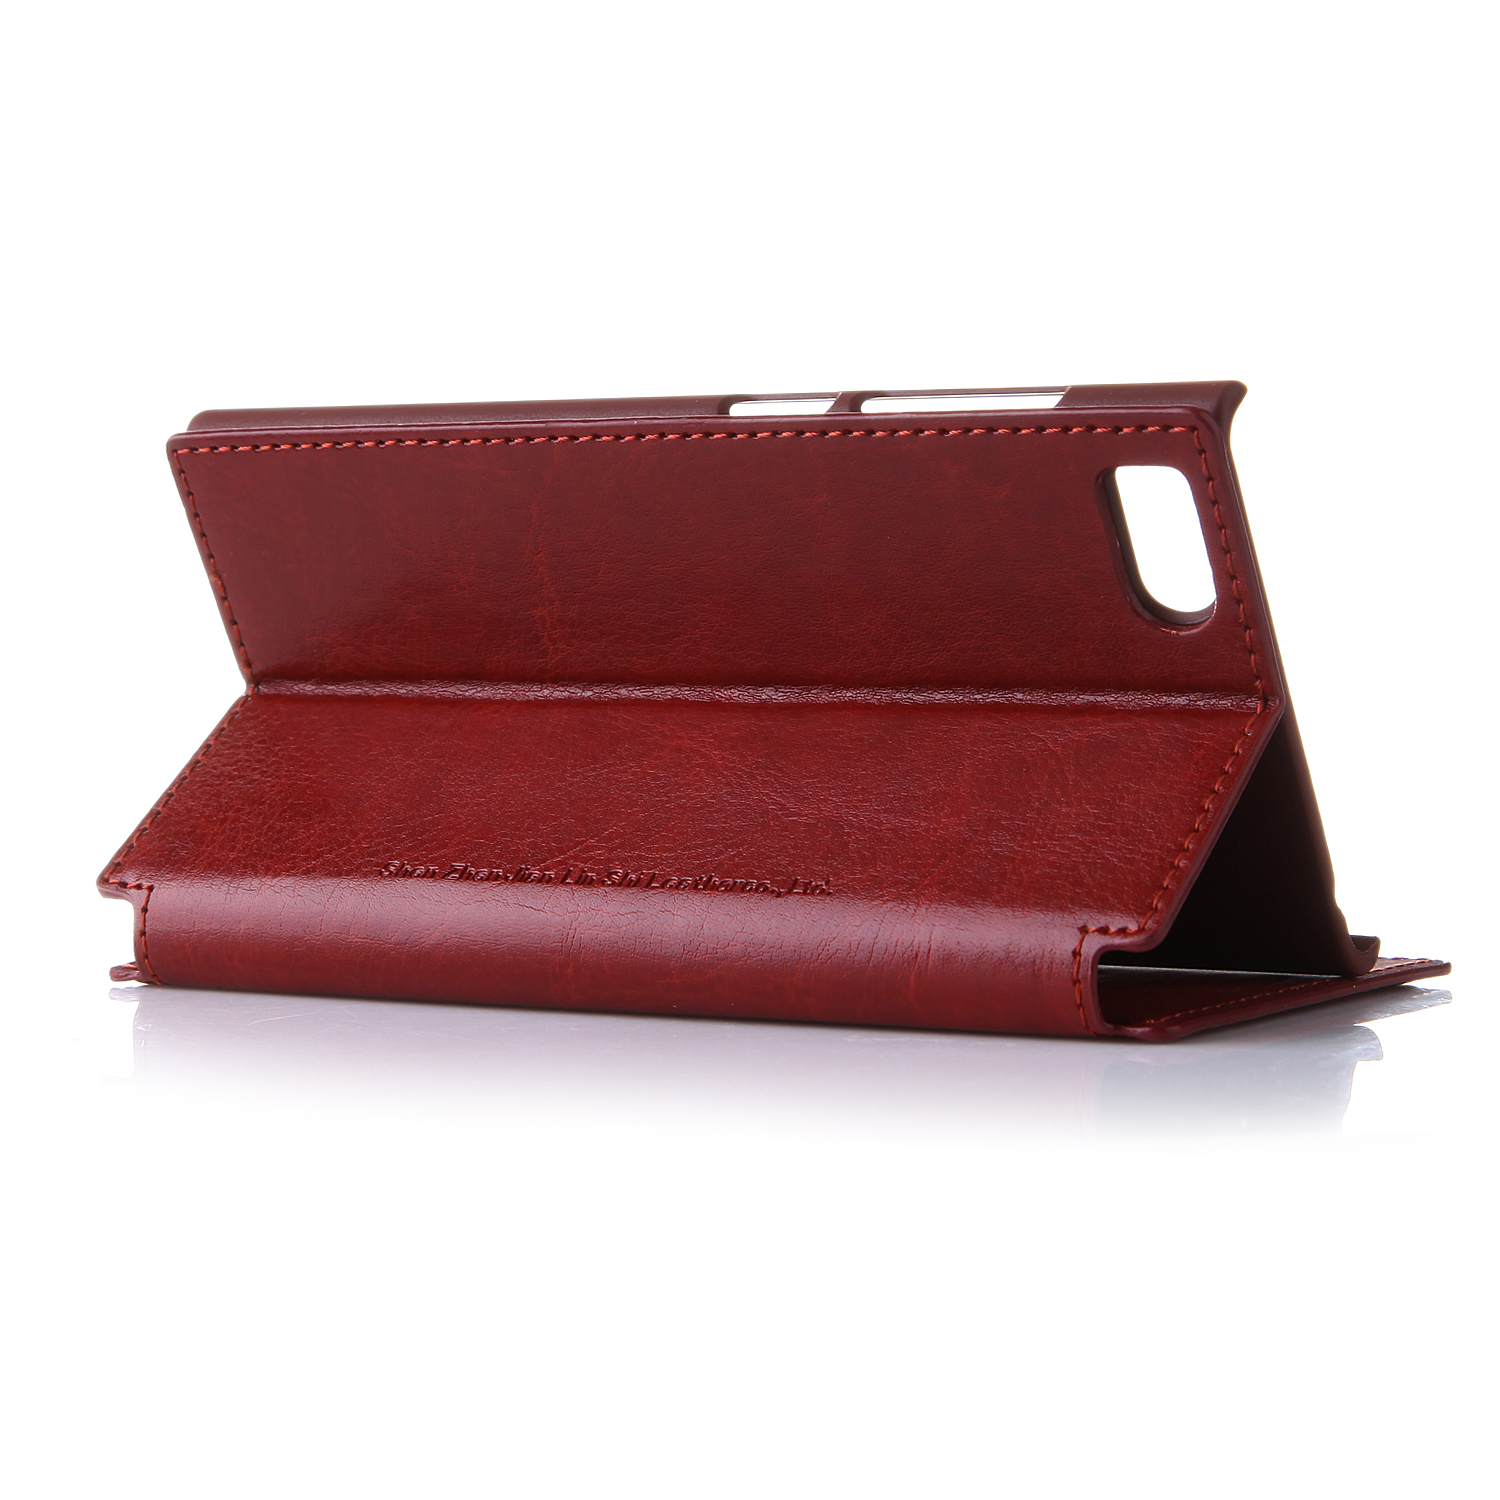 Leather Flip Cover Stand Case for XIAOMI MI3 Smartphone Brown